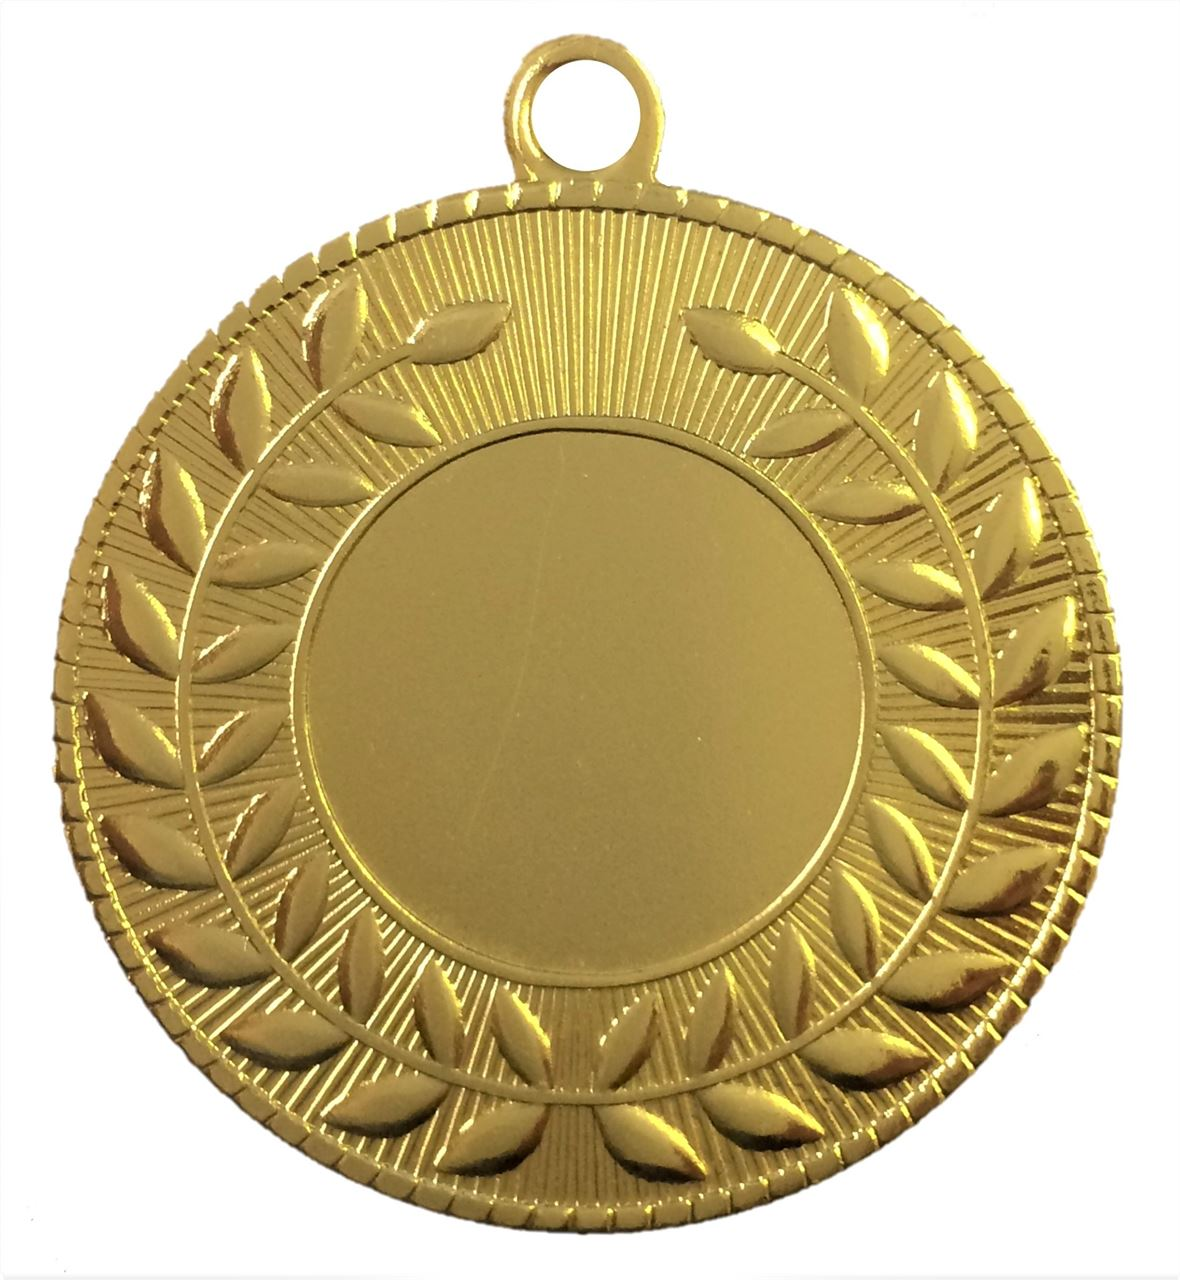 Gold Economy Dawning Medal (50mm) - 7008G